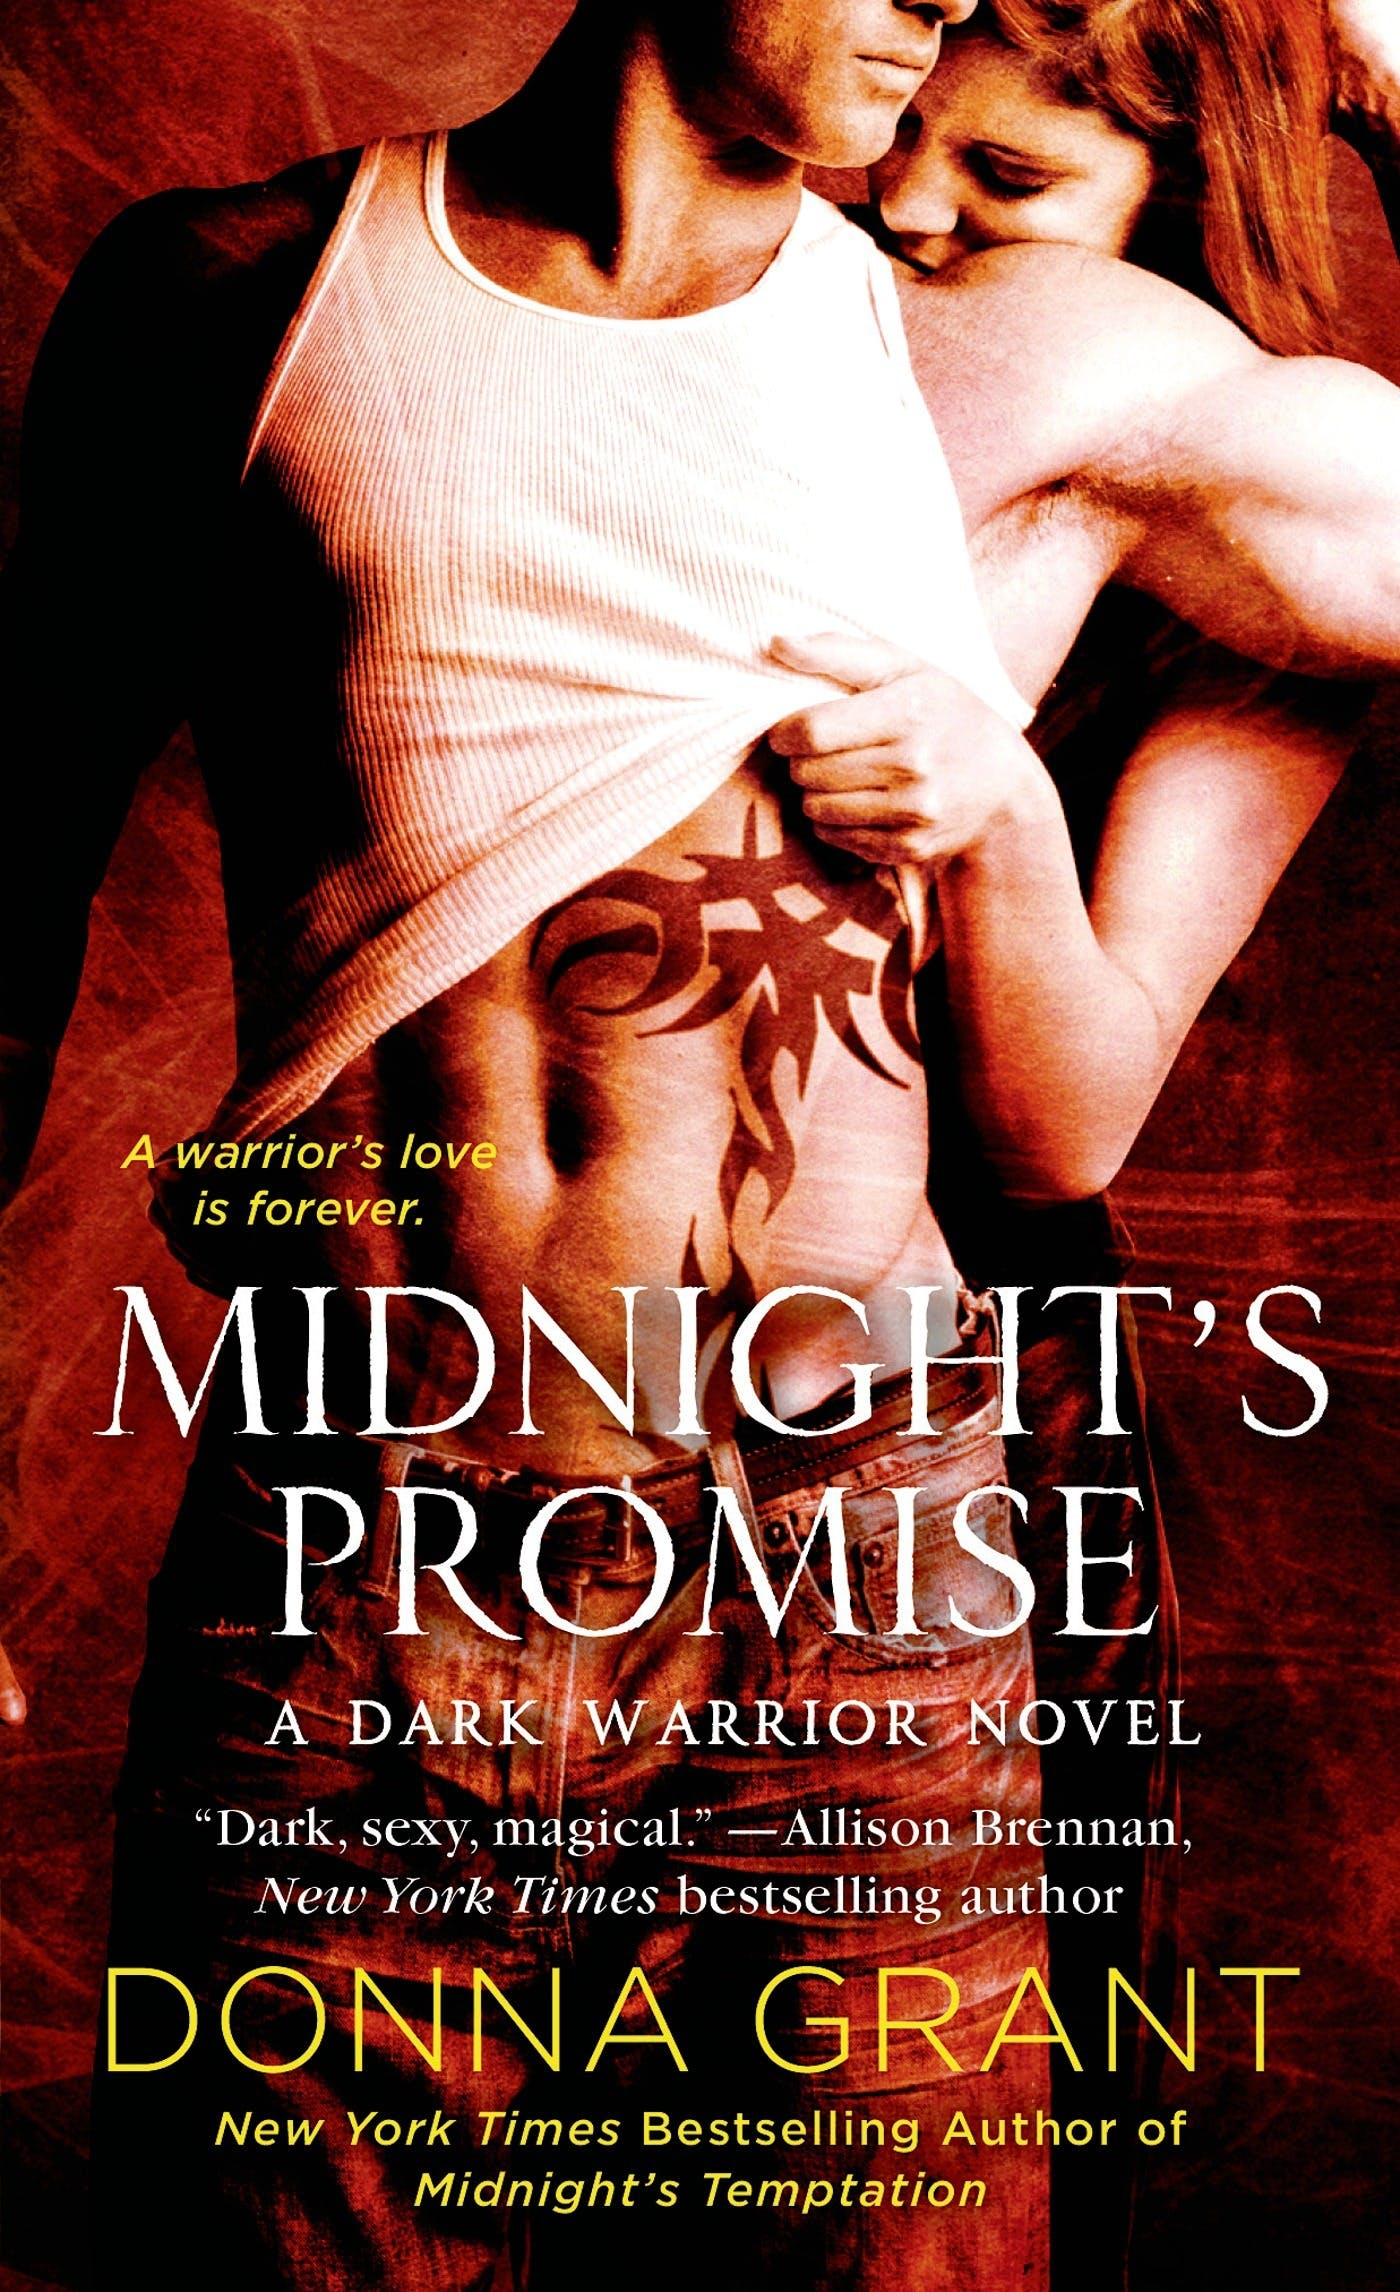 Image of Midnight's Promise